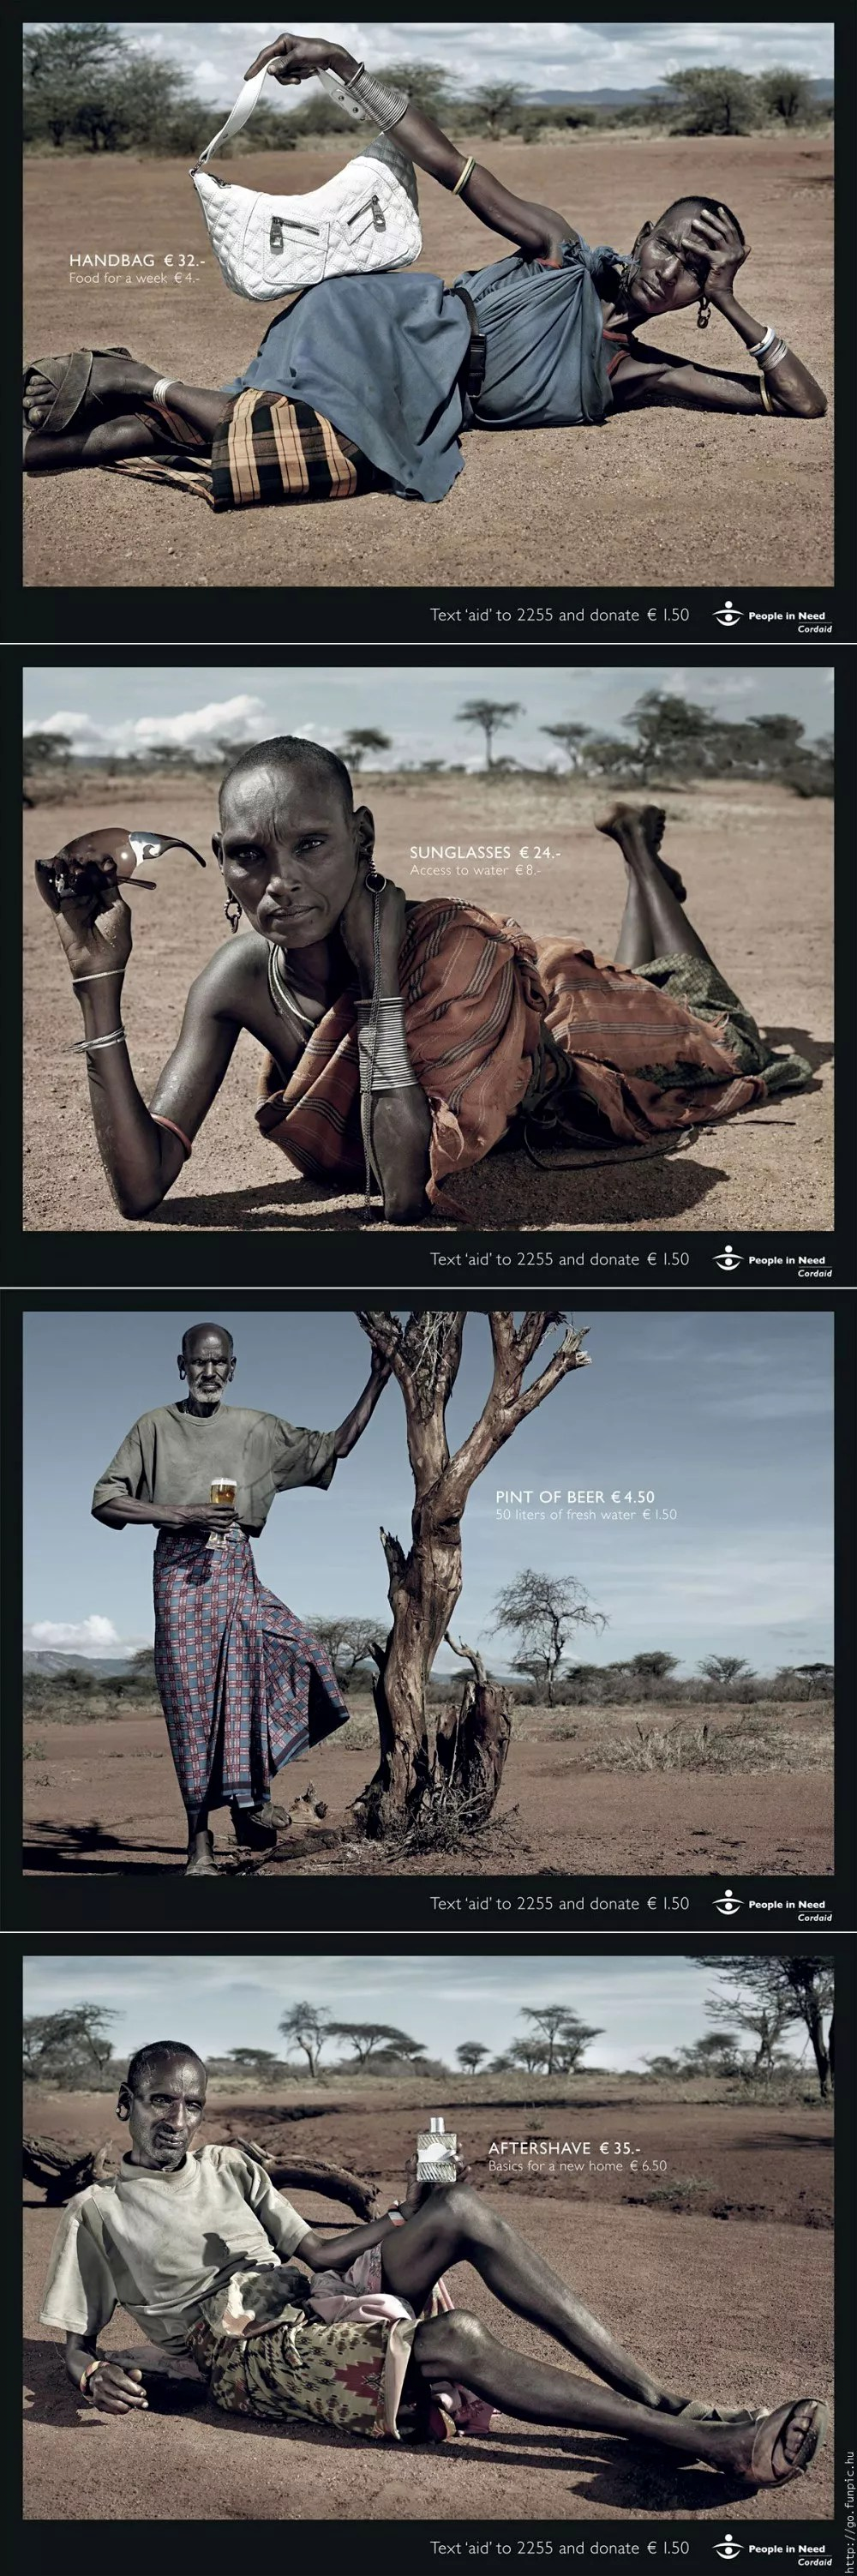 Series of ads for Cordaid by Saatchi & Saatchi